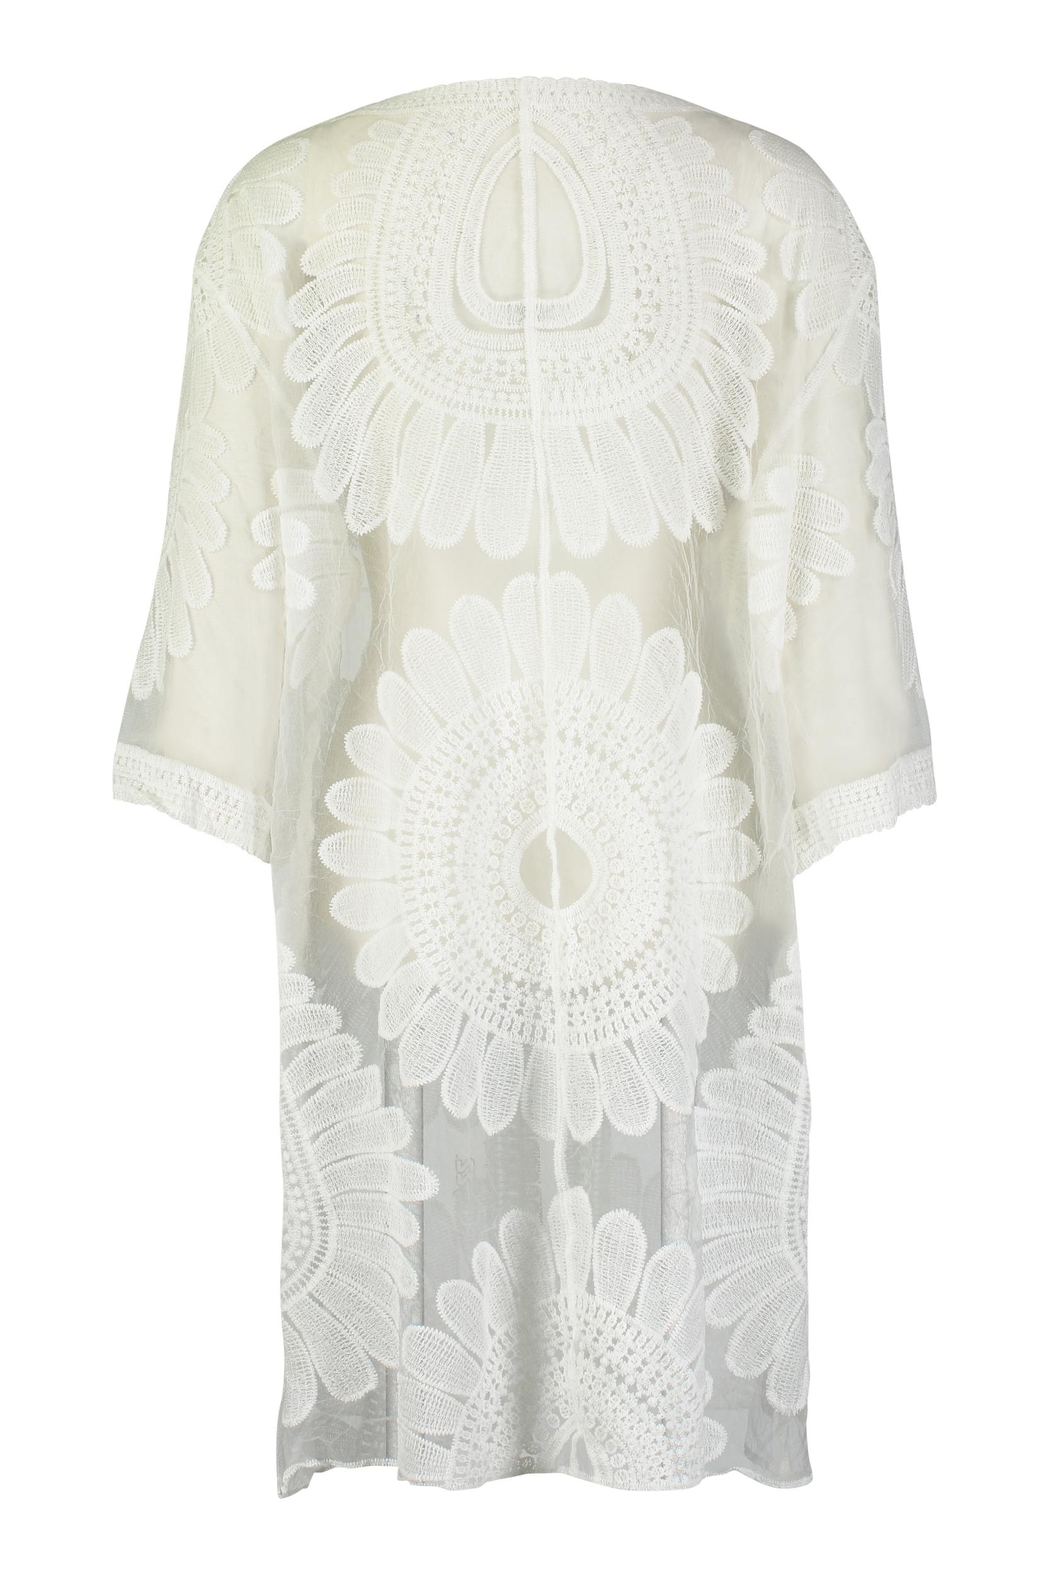 Tempo Paris Lace Embroidered Kimono - Front Full Image